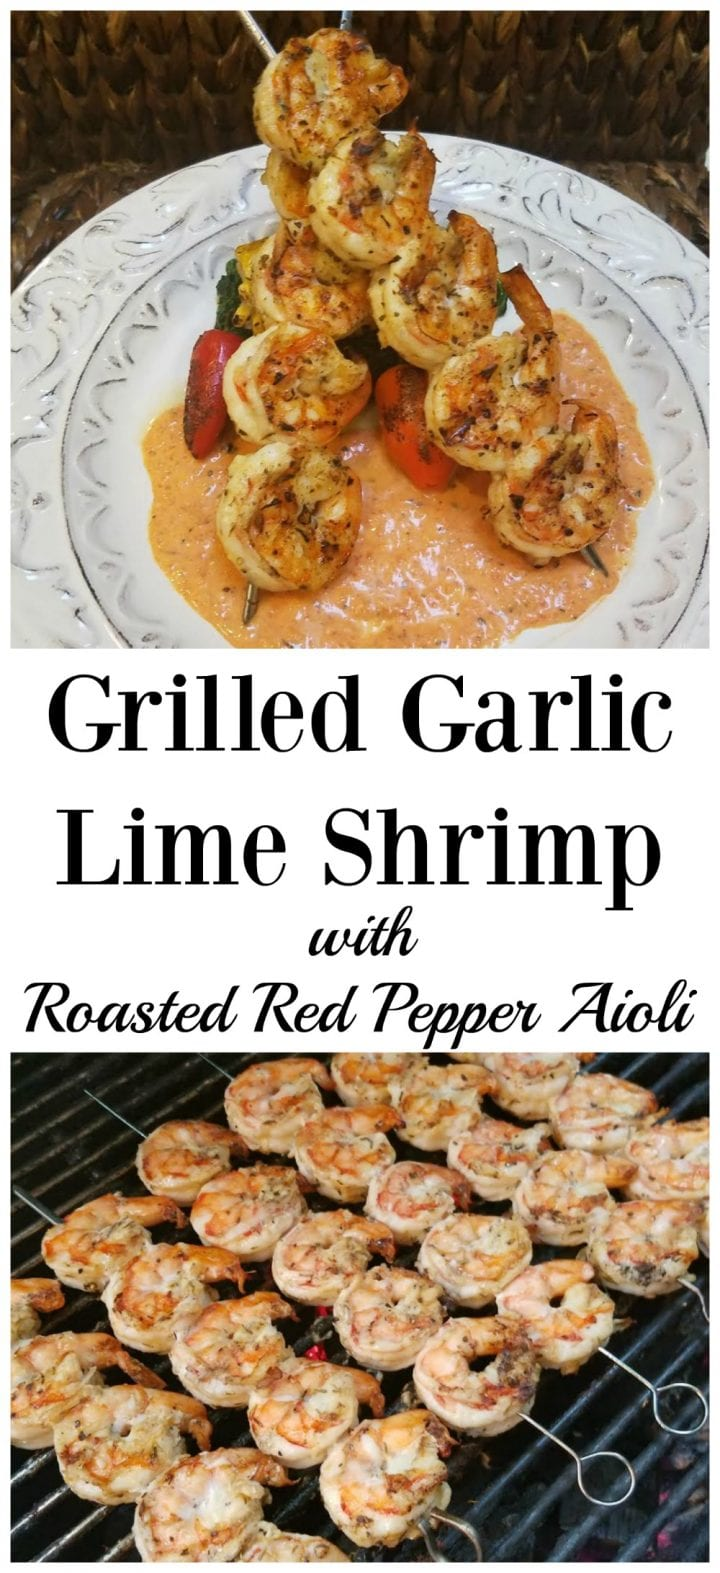 Grilled Garlic Lime Shrimp with Roasted Pepper Aioli Recipe